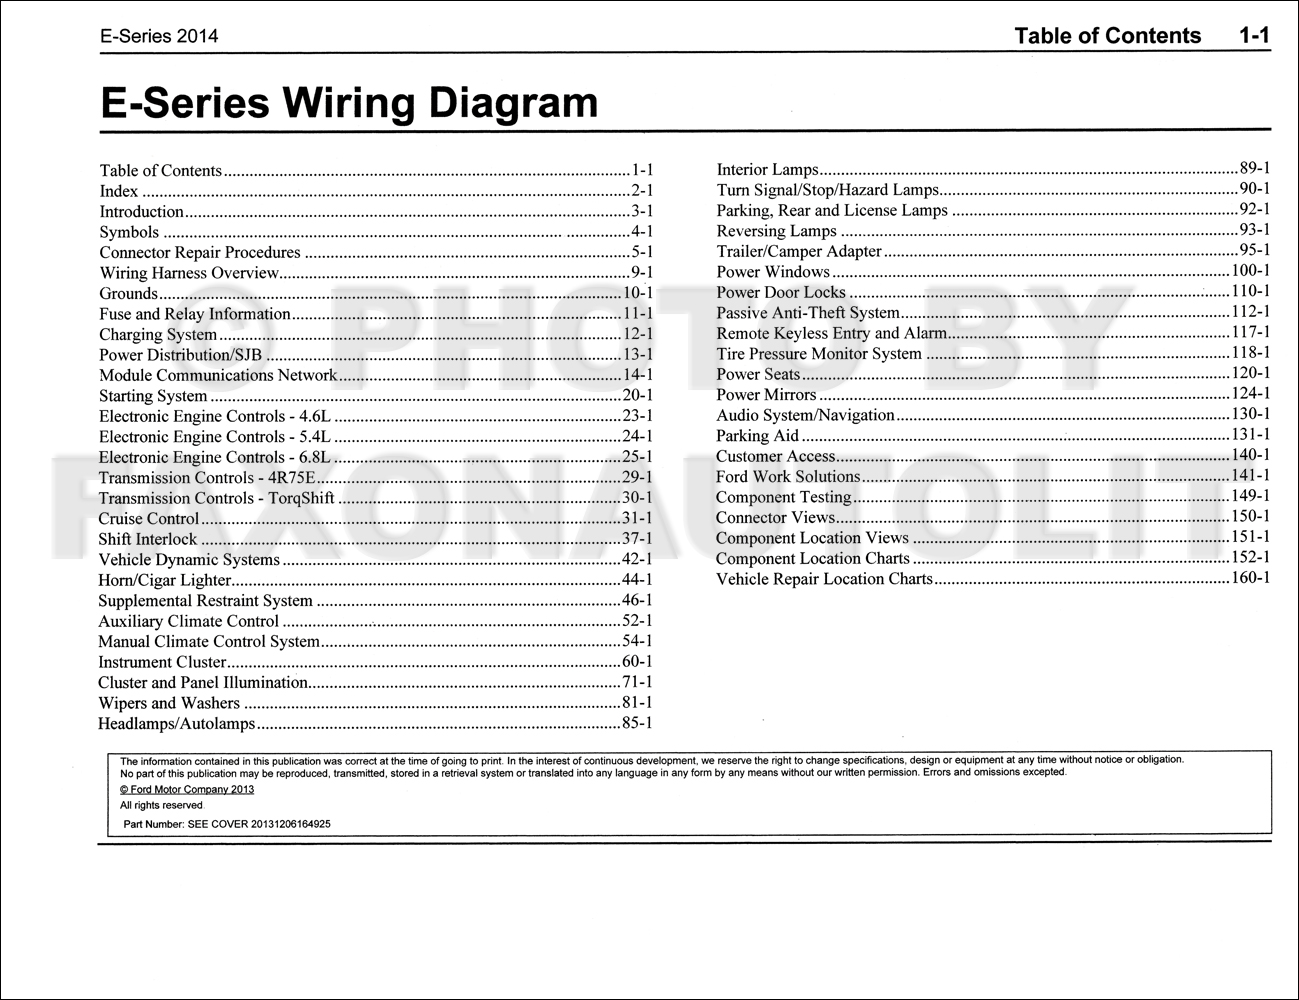 Wiring Diagram For A 1993 Ford Econoline Van 1981 Ford F150 Wiring Diagram Econoline Van Ford